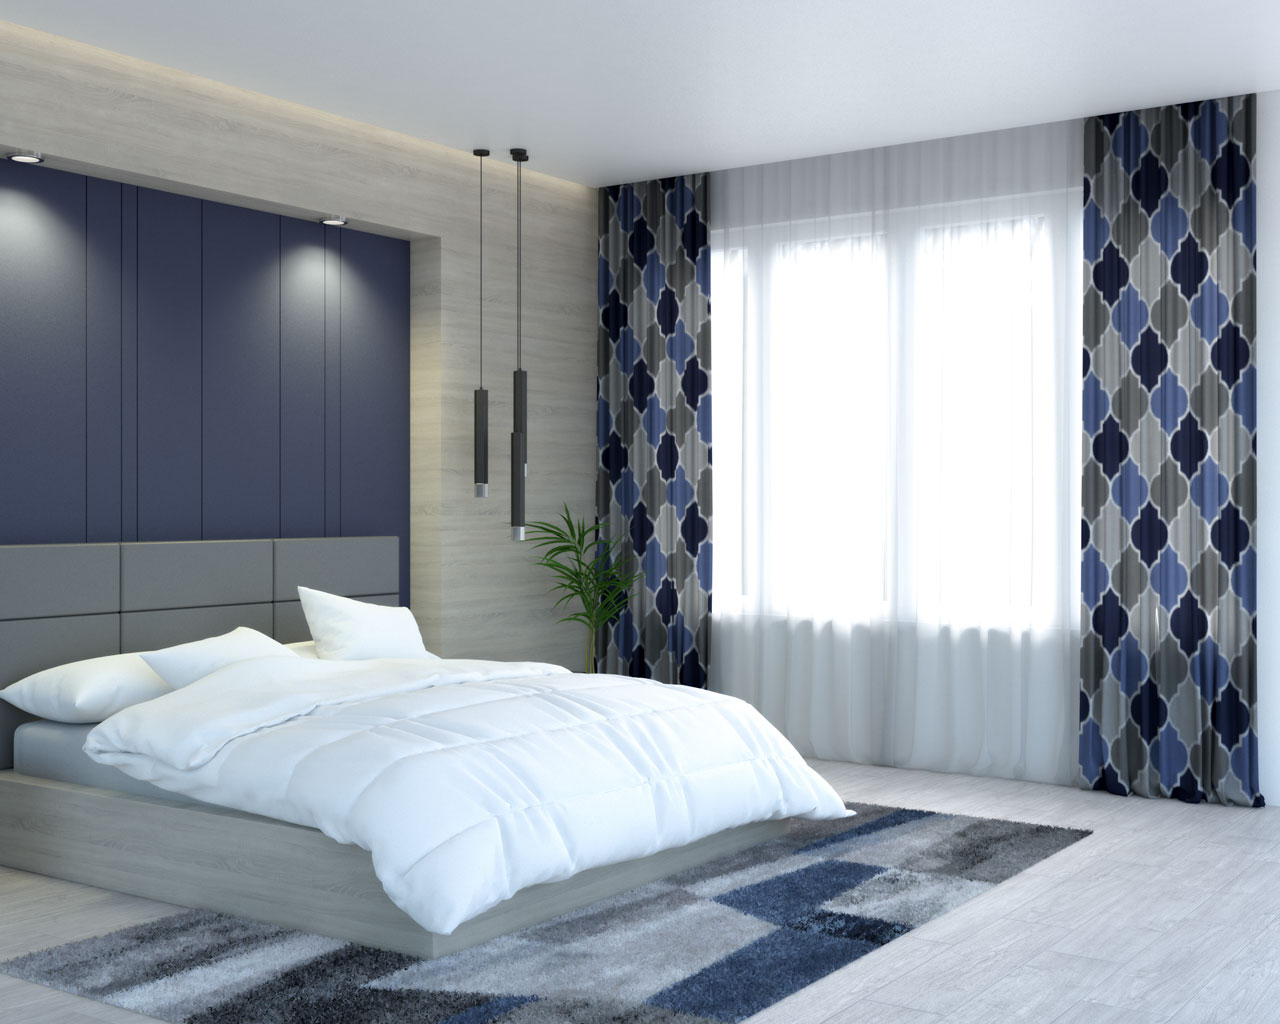 Blue and gray lattice pattern curtains